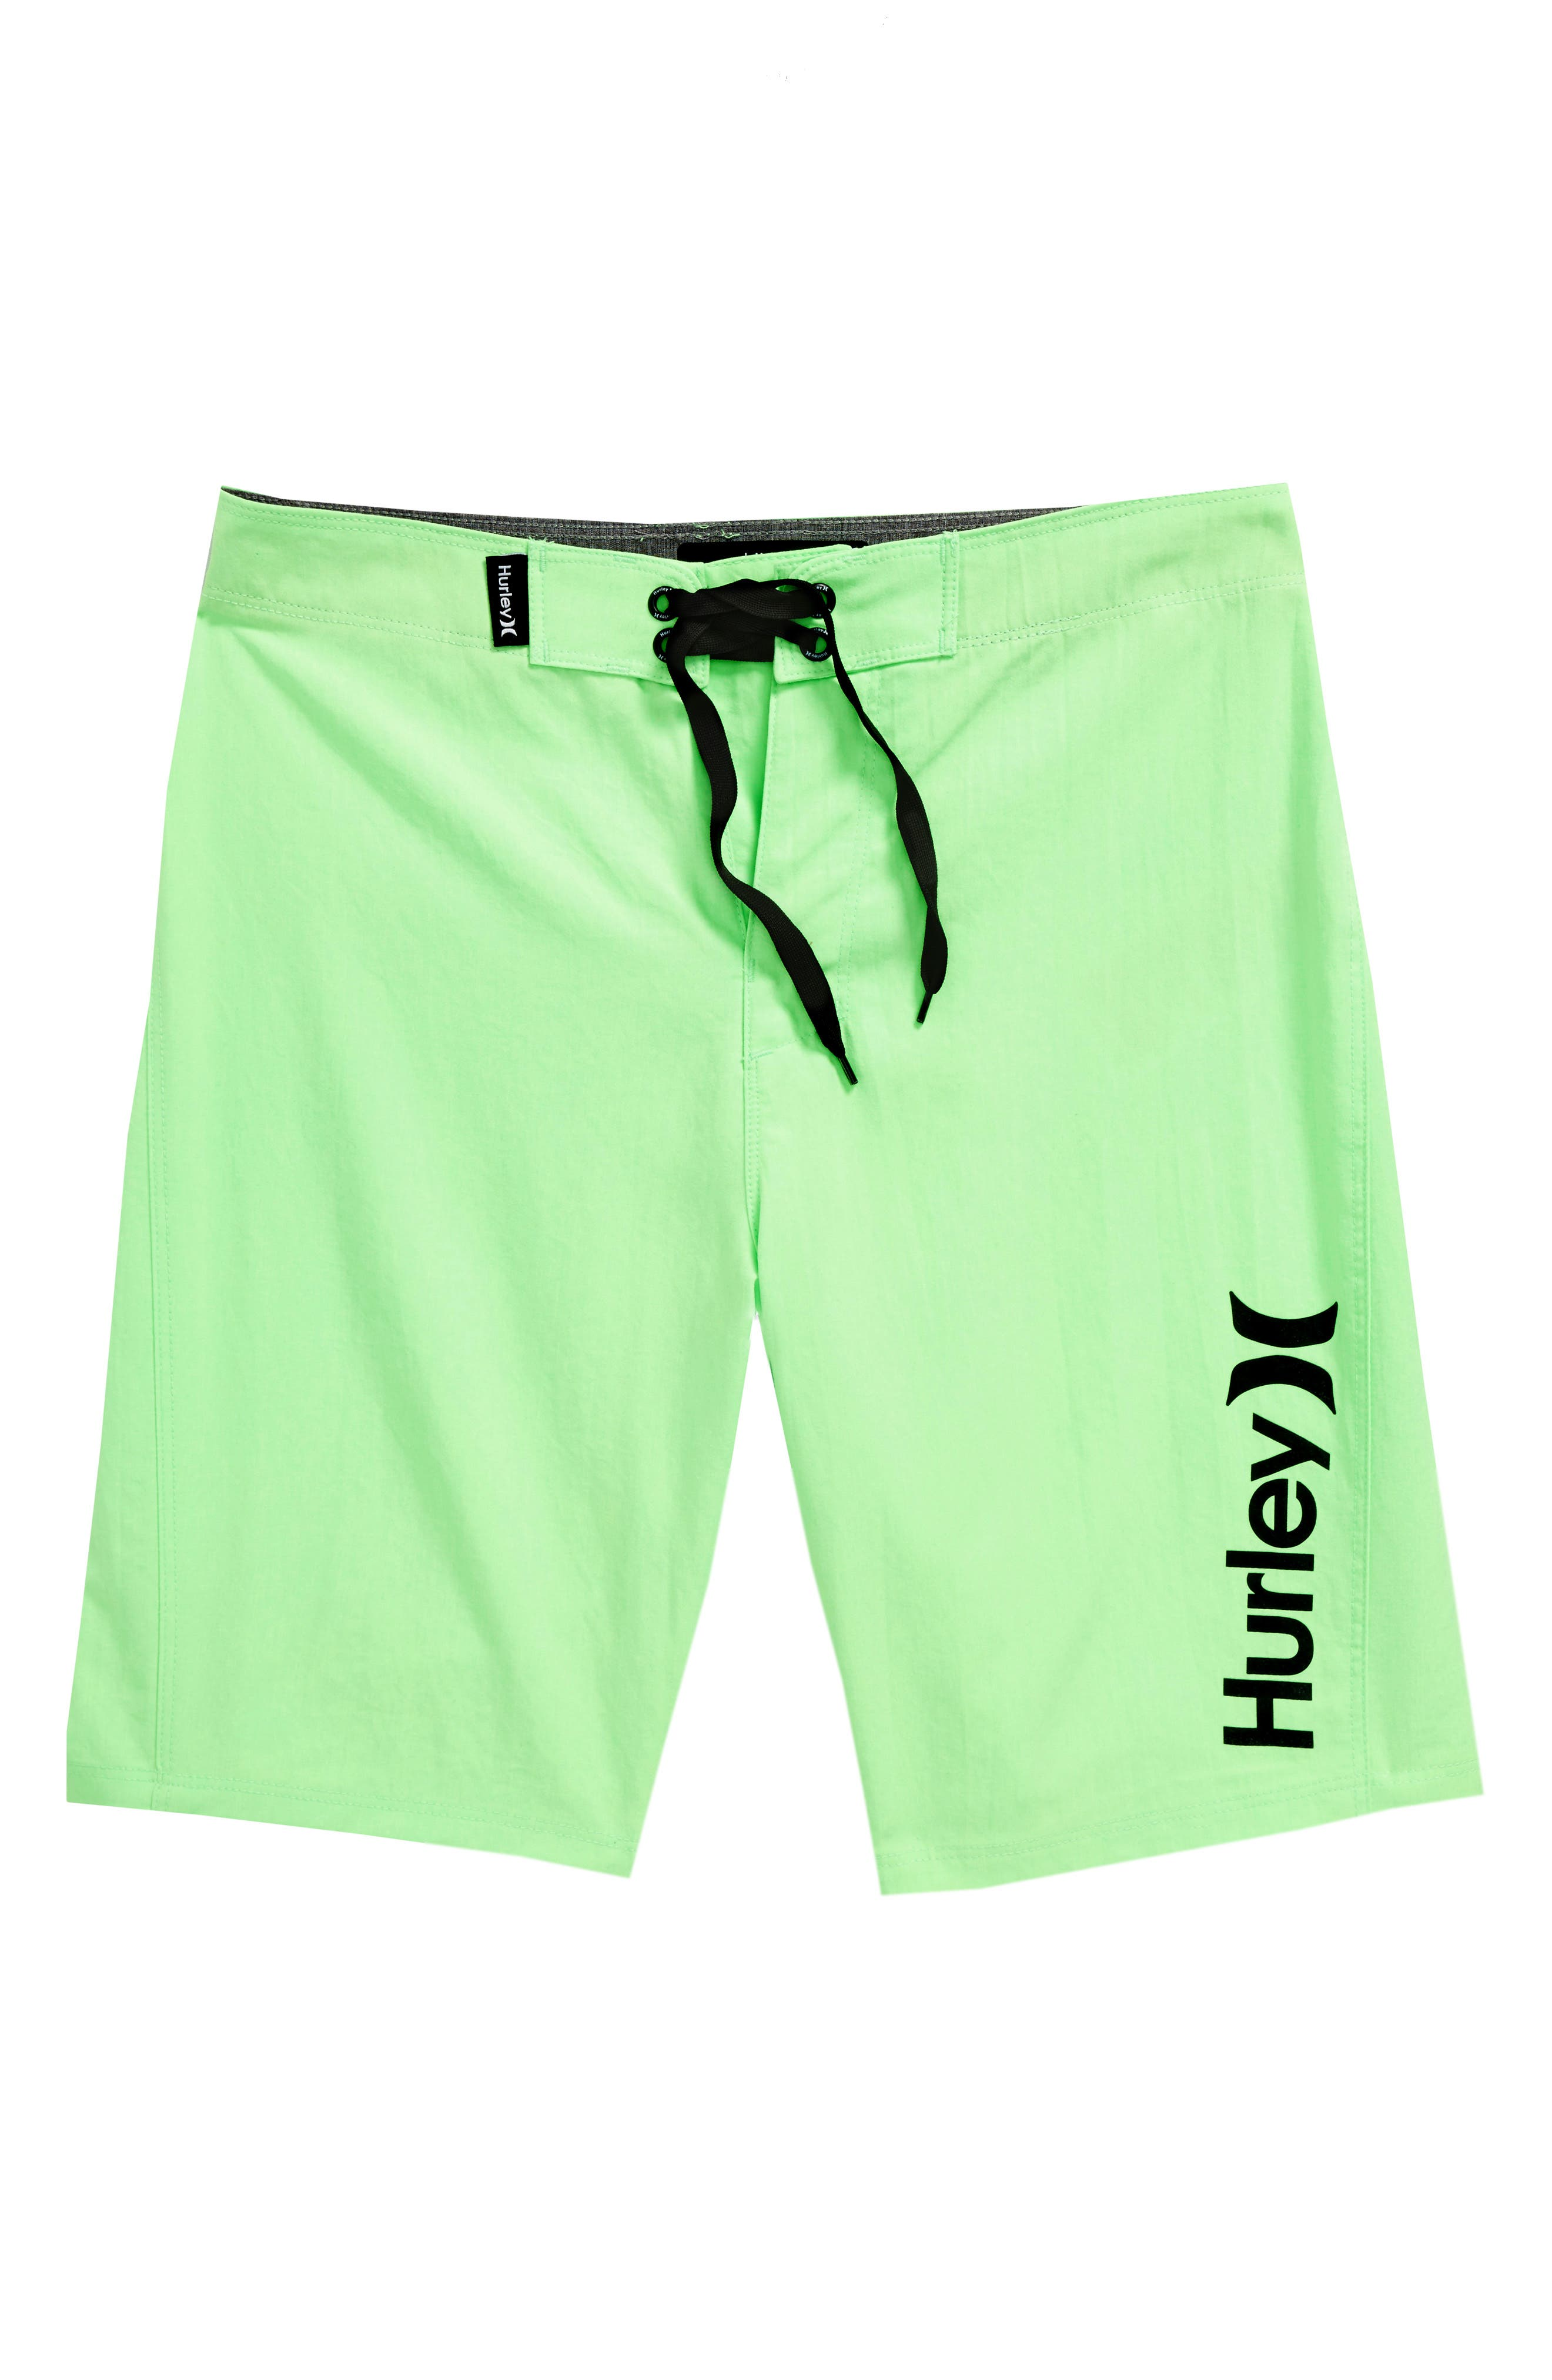 One and Only Dri-FIT Board Shorts,                             Main thumbnail 1, color,                             Neon Green Heather